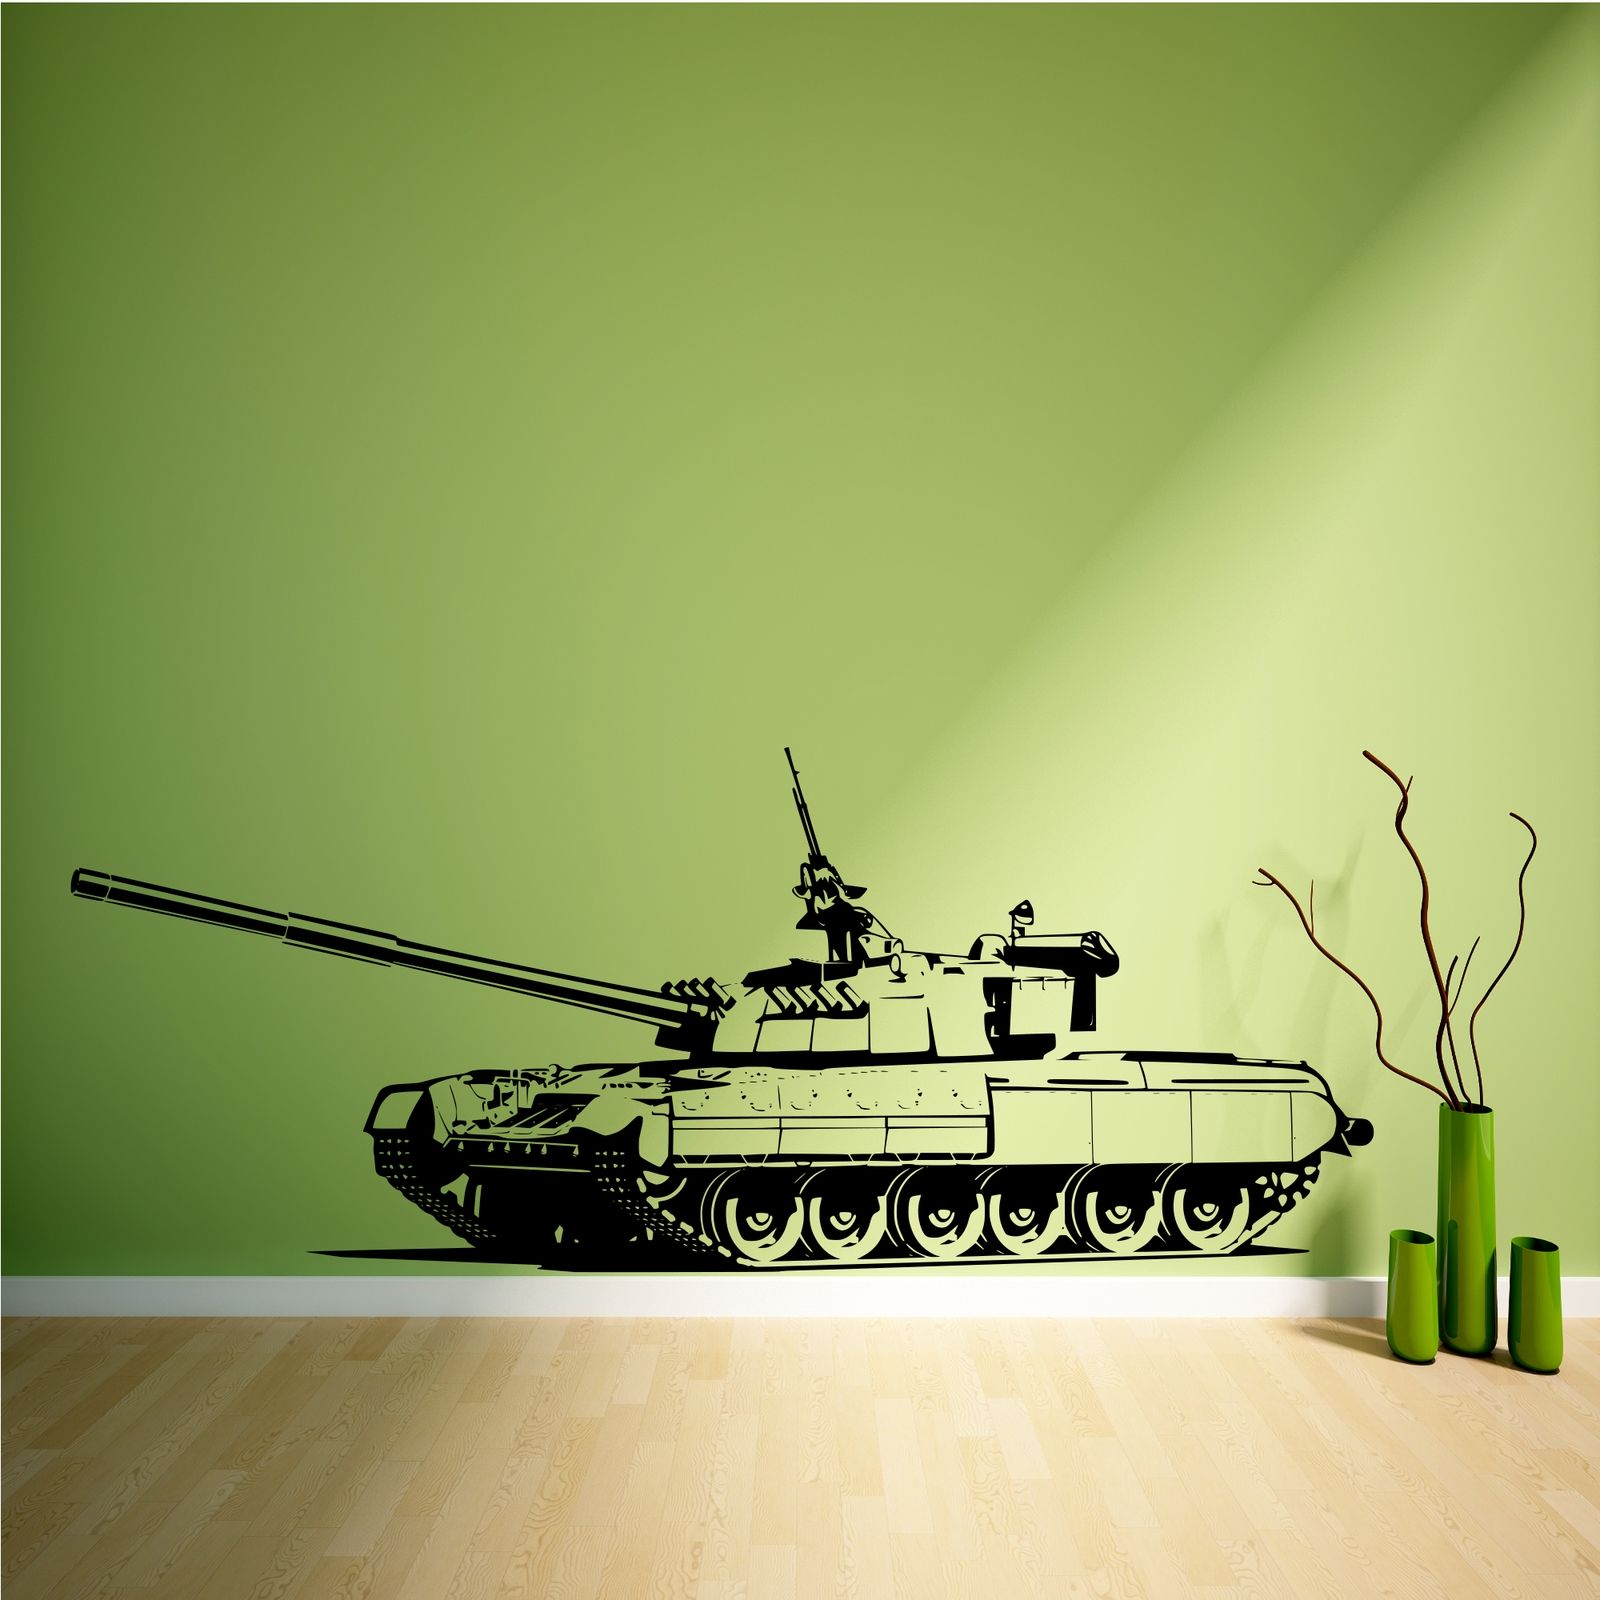 TANK ARMY BOYS BEDROOM WALL ART STICKERS DECALS